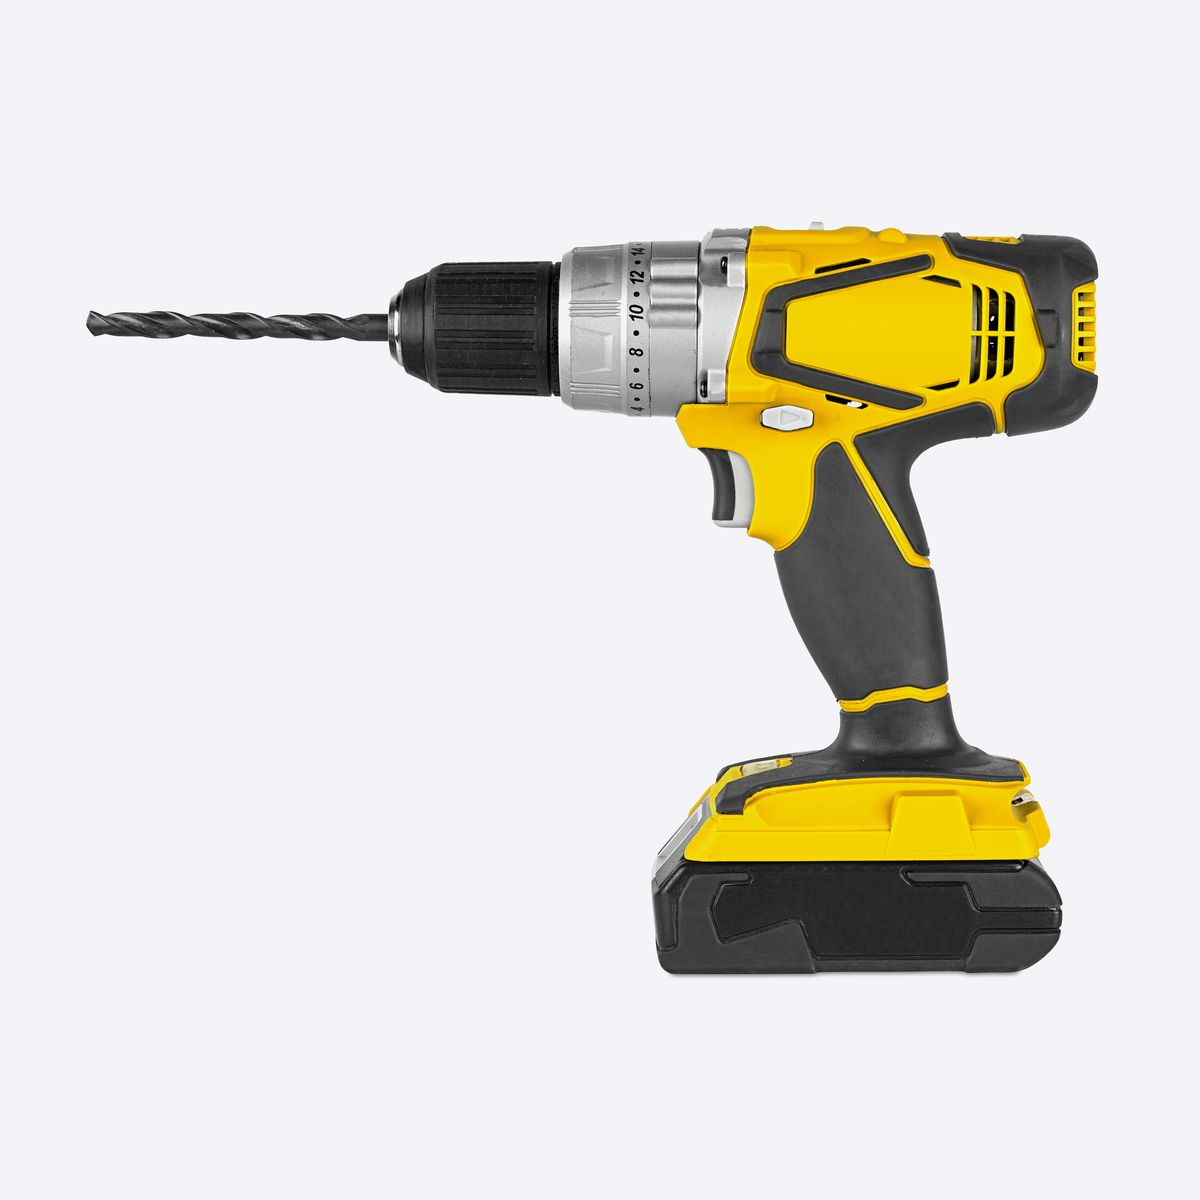 A yellow drill on a gray background.